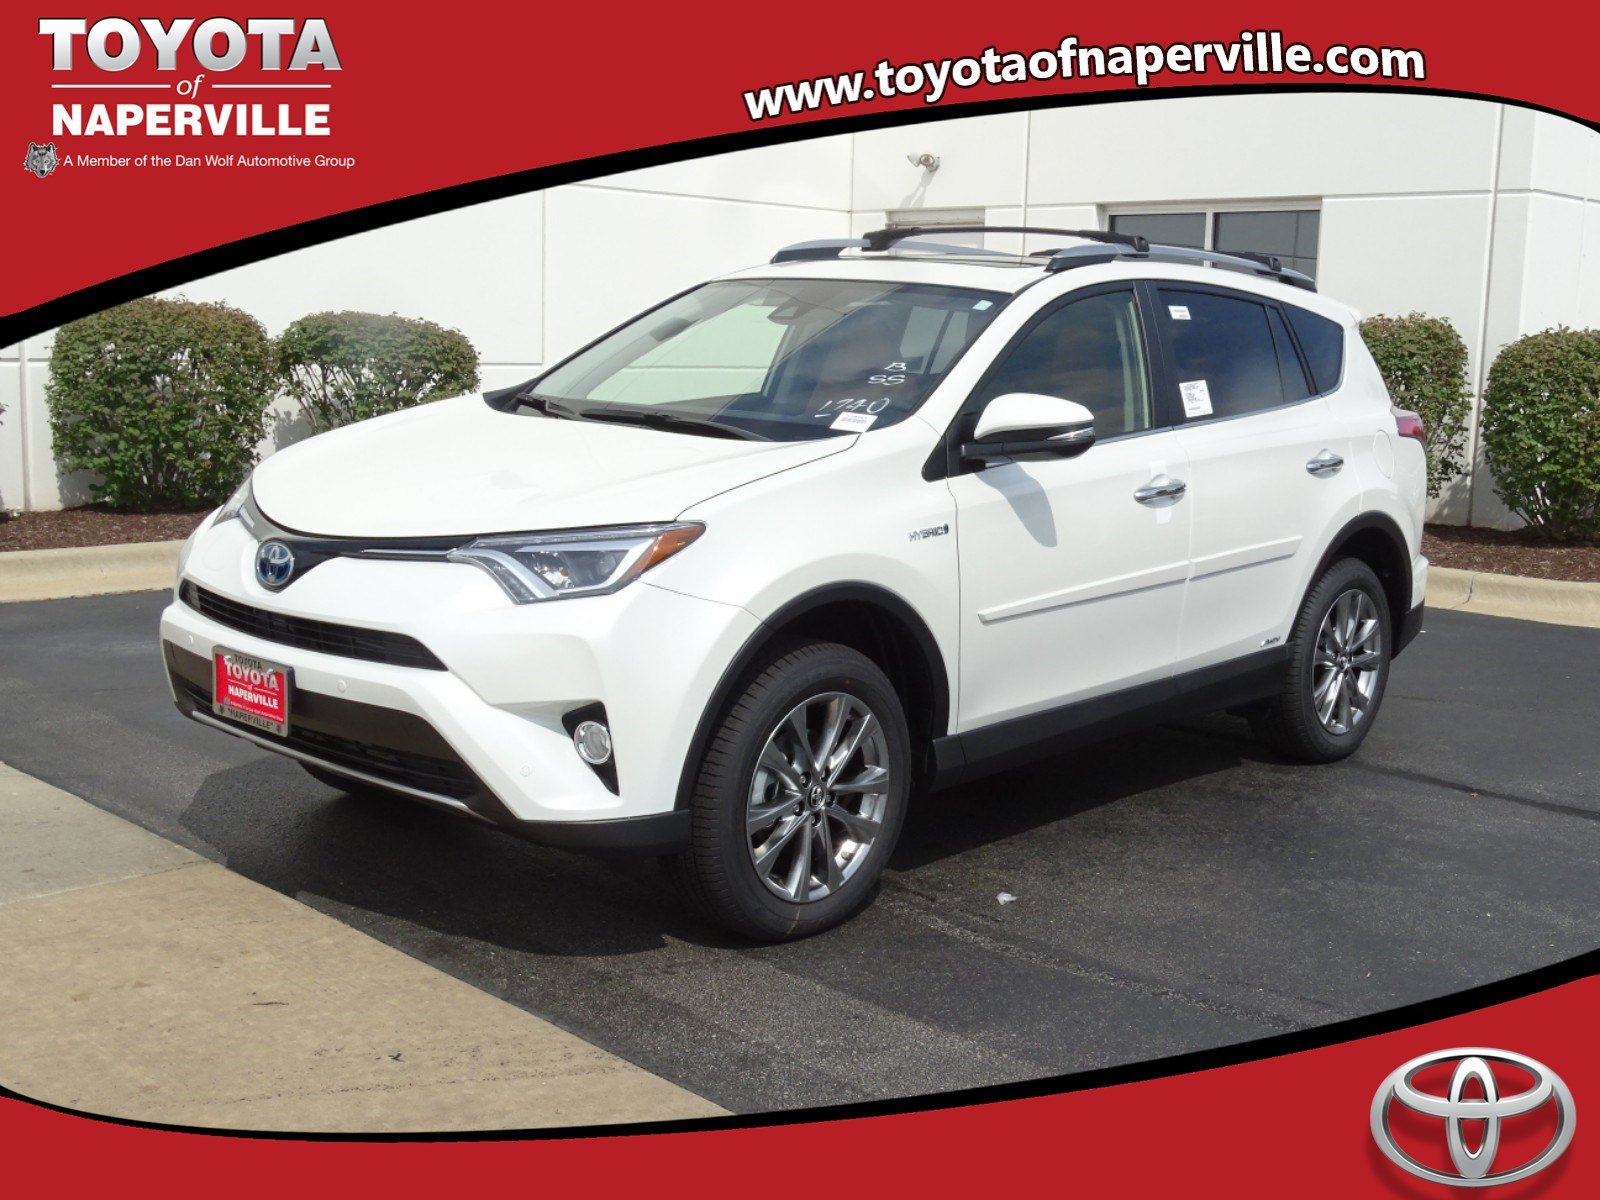 Toyota RAV4 Service Manual: On-vehicle inspection